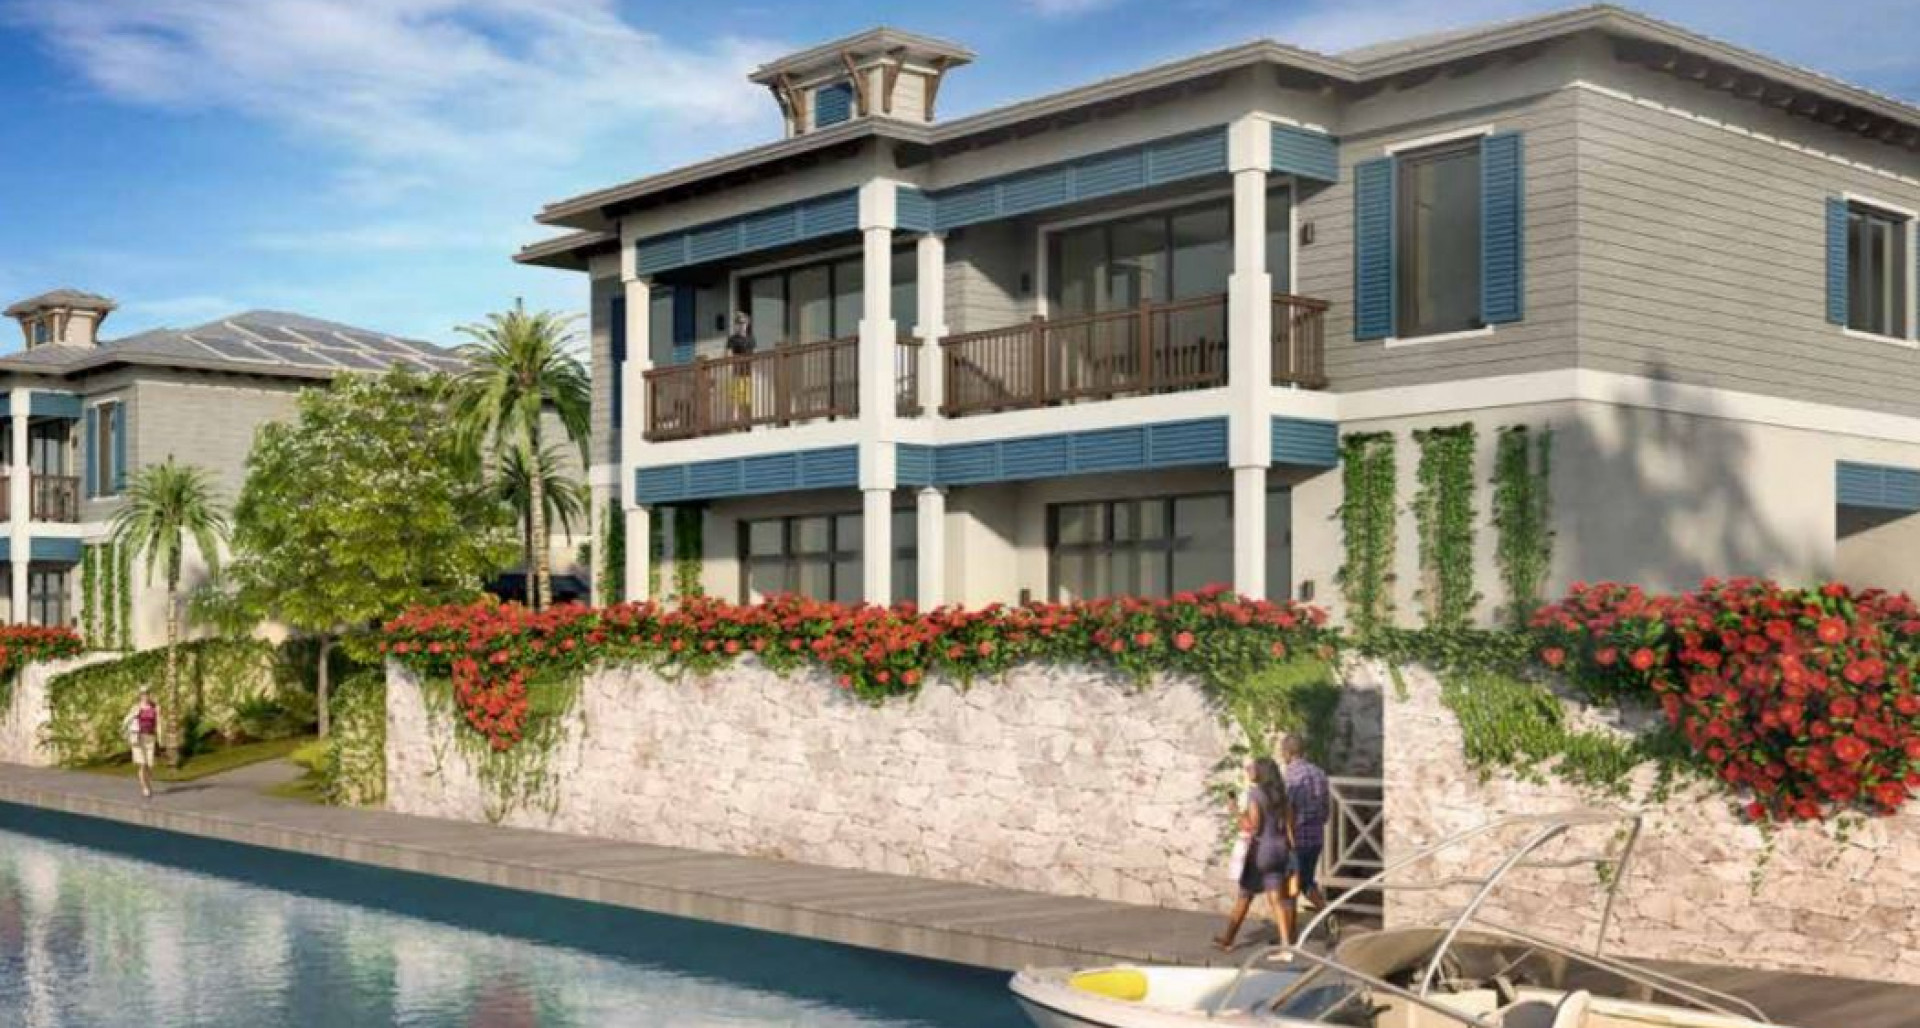 Olea Waterfront Duplex – Residence 110 with Private Pool